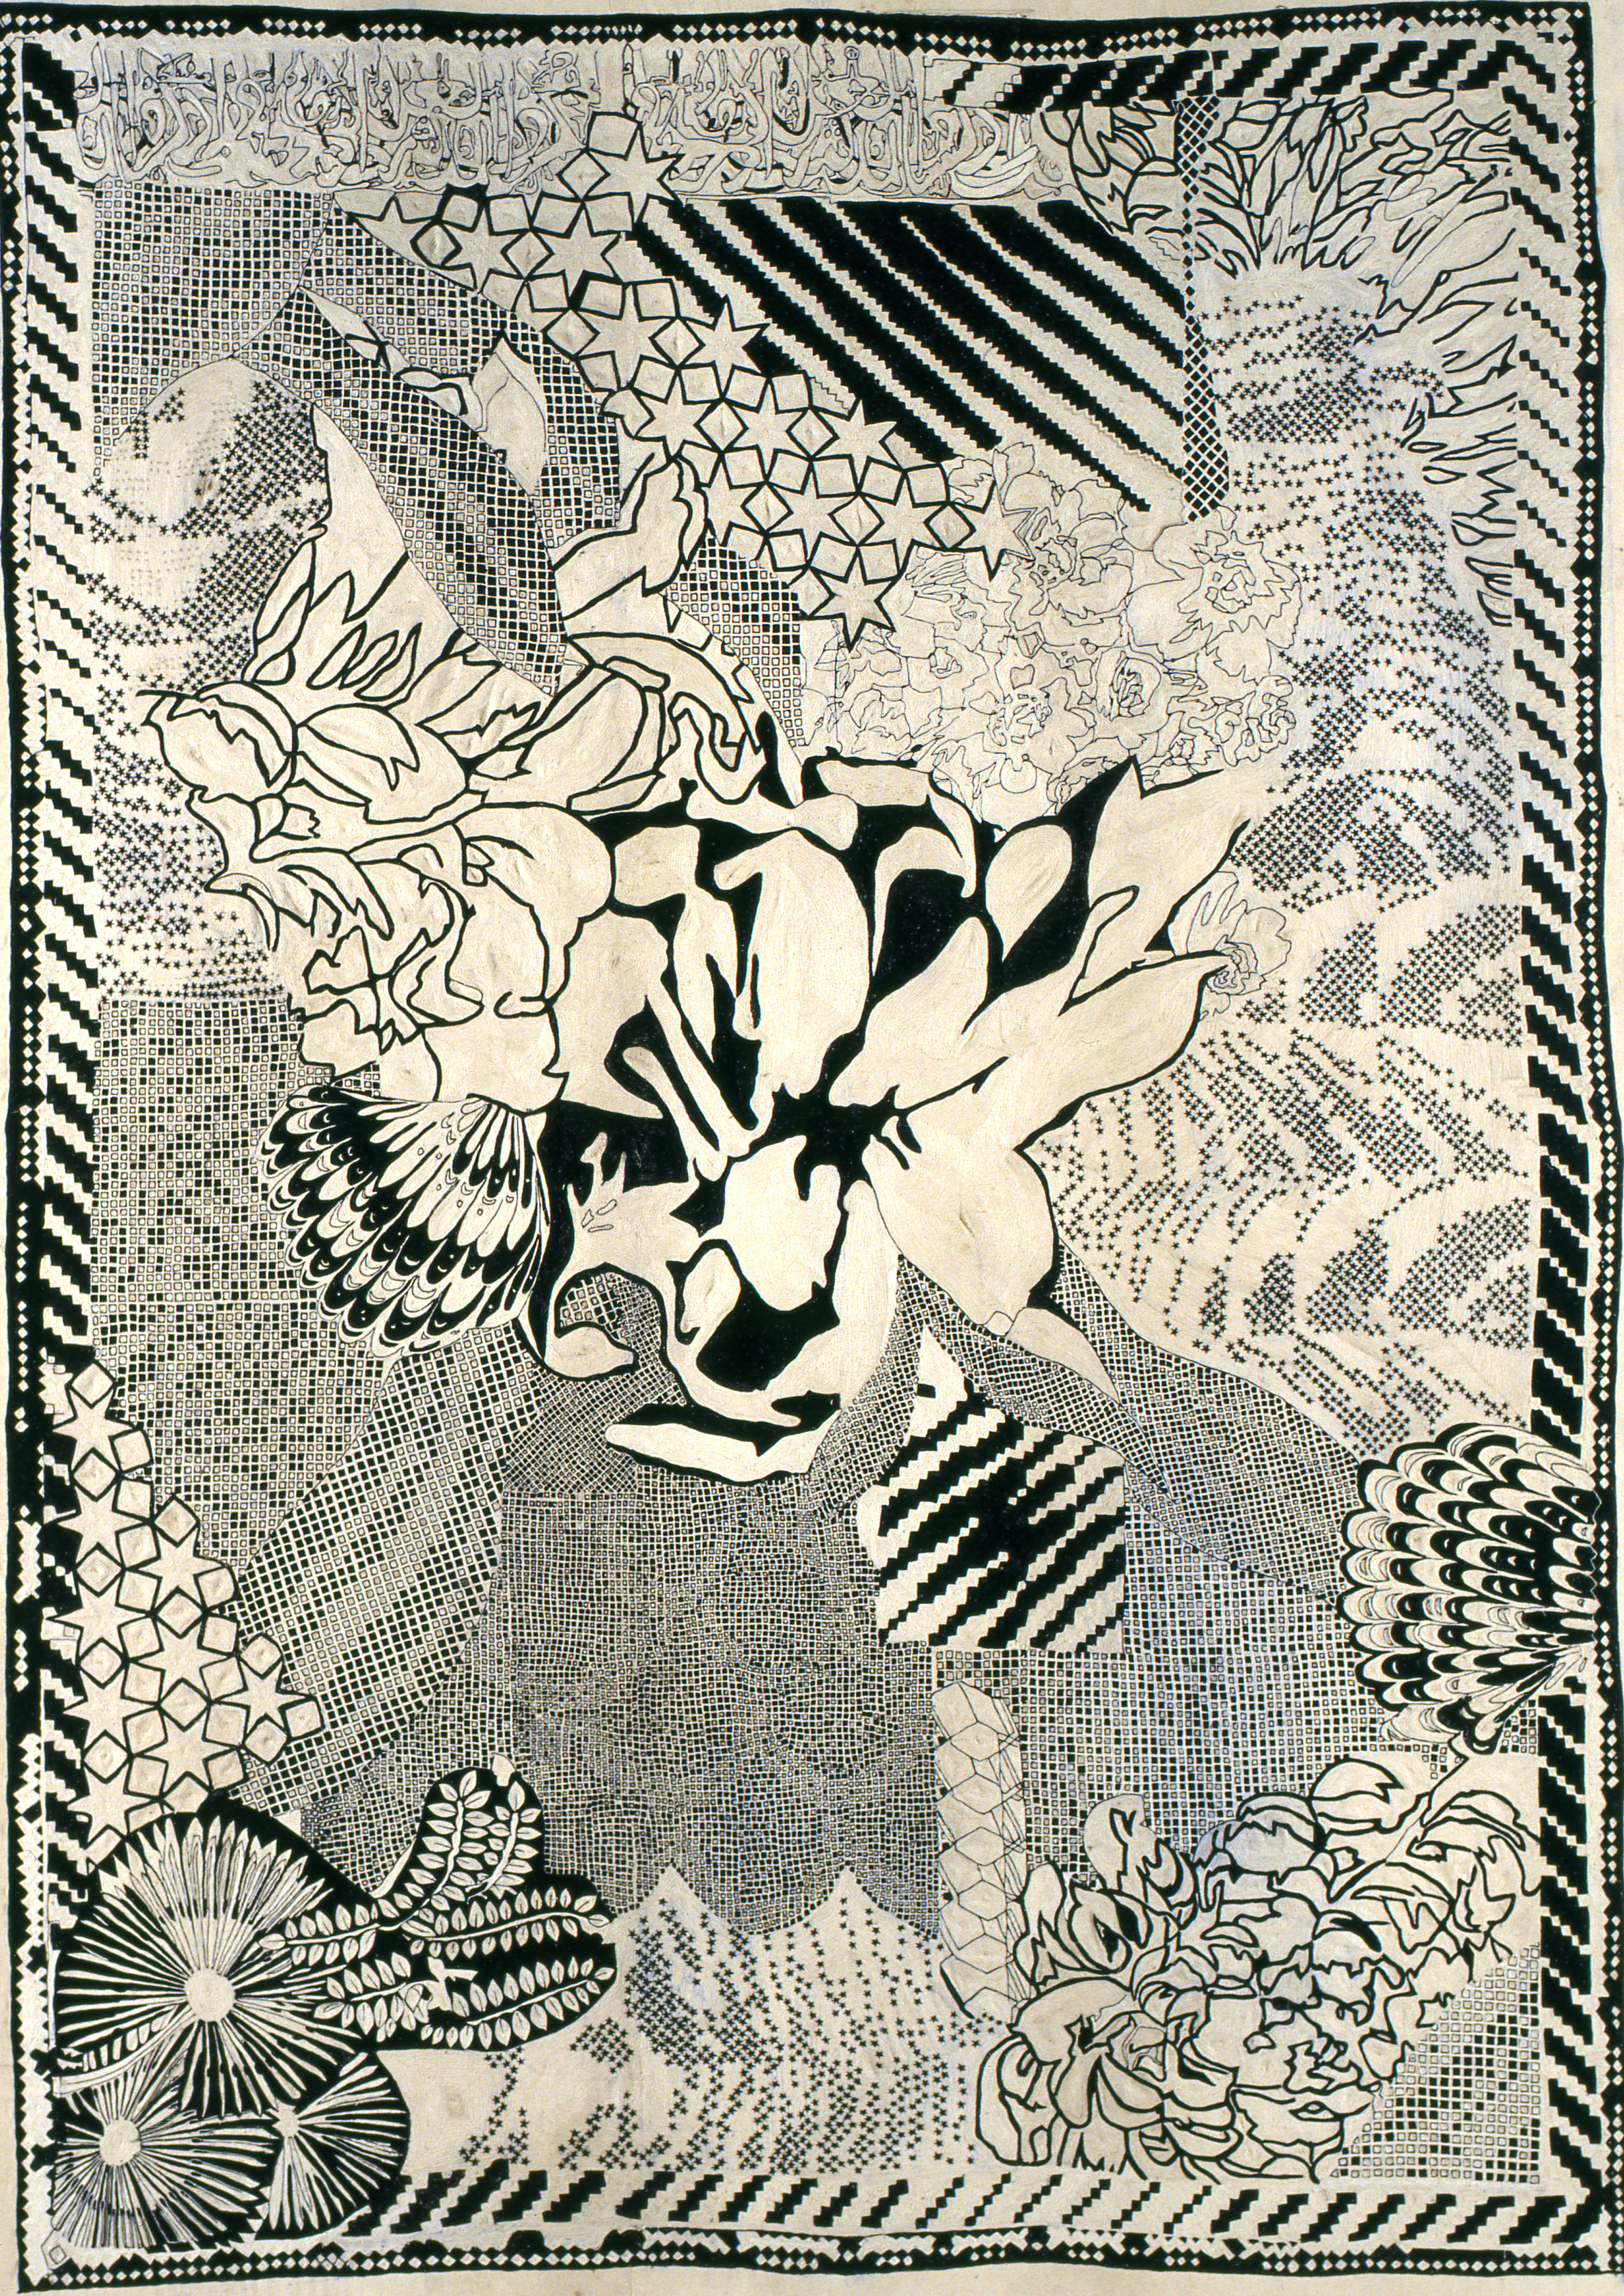 Composition in black and white, hand embroidered, 235 x 165 cm